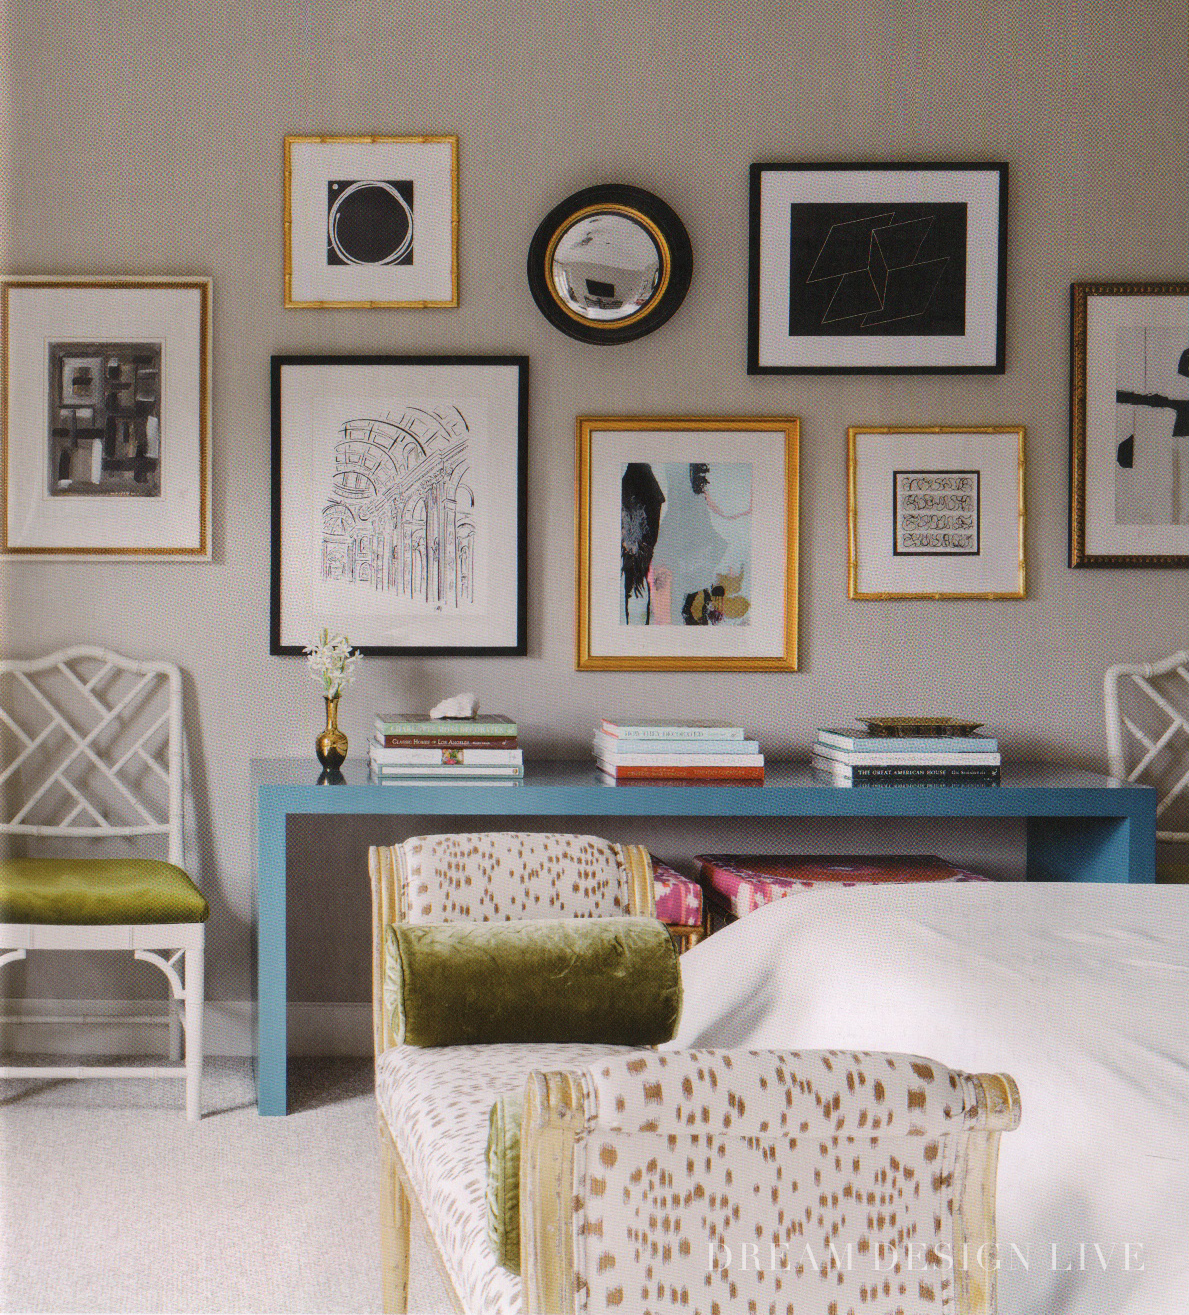 Bedroom and gallery wall from Dream Design Live, Paloma Contreras' fantastic new interior design book.